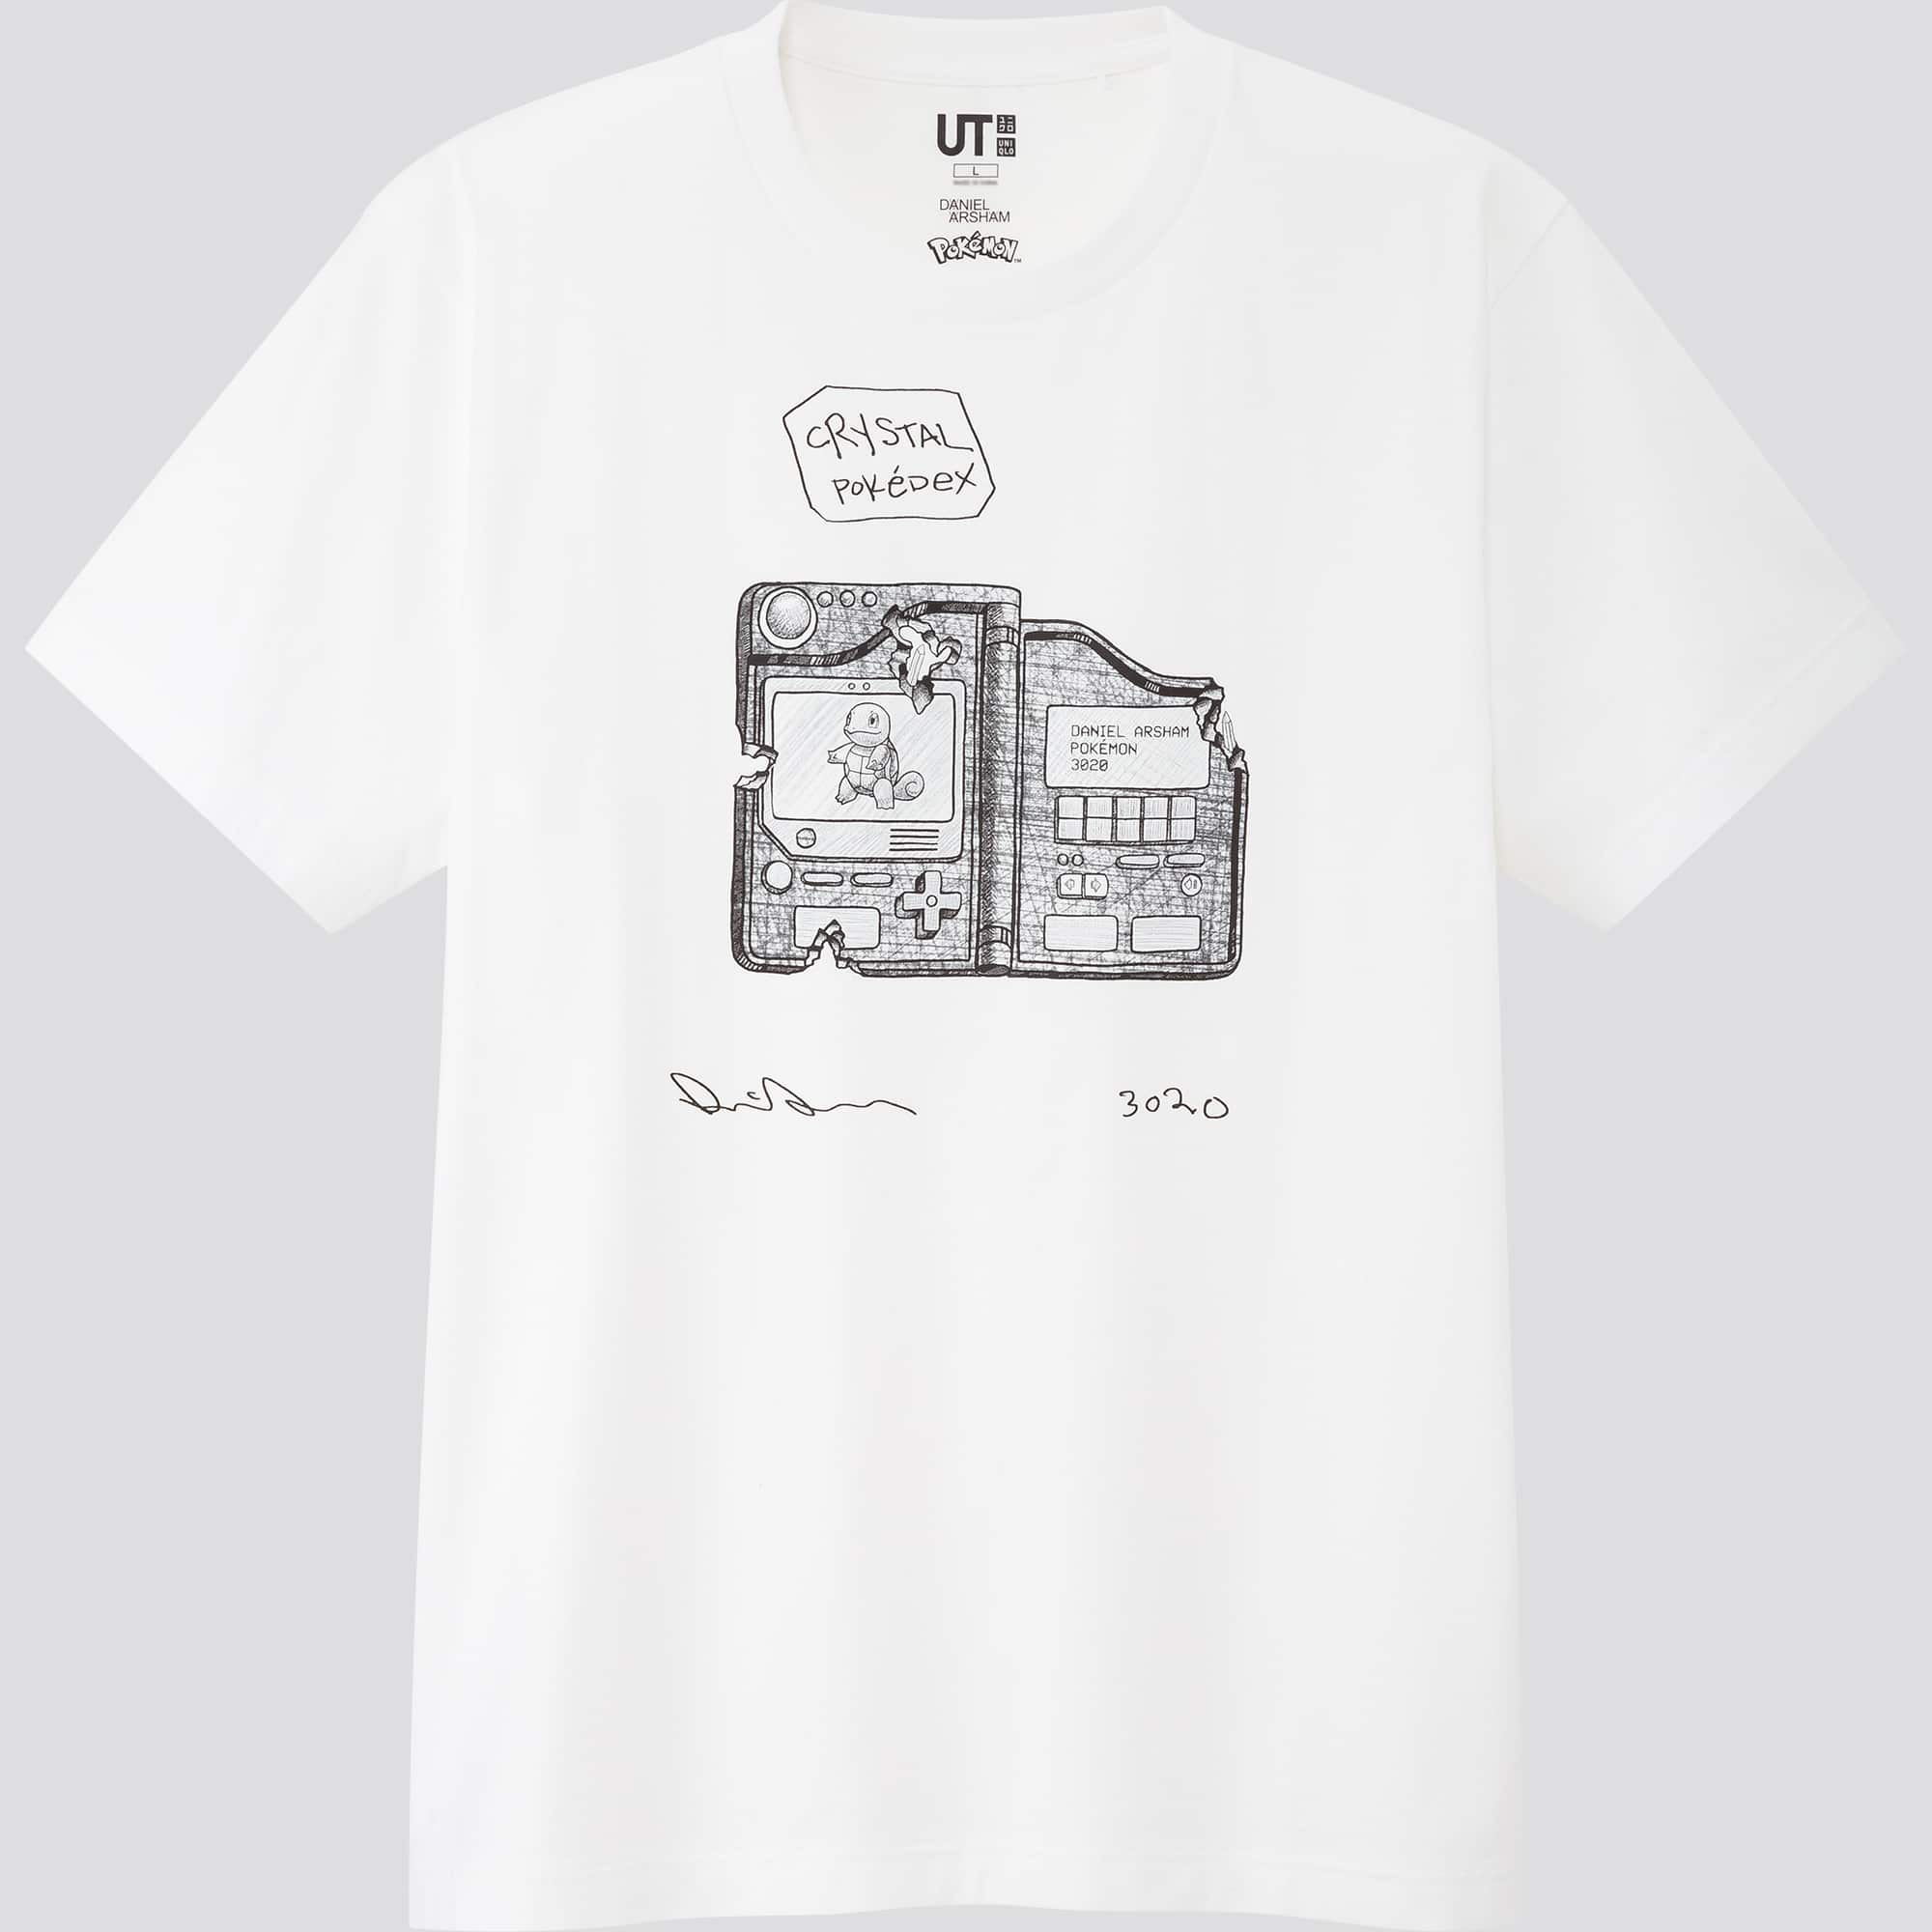 Uniqlo's Daniel Arsham x Pokémon t-shirts feature sketches of Pikachu, Mewtwo, & more 26